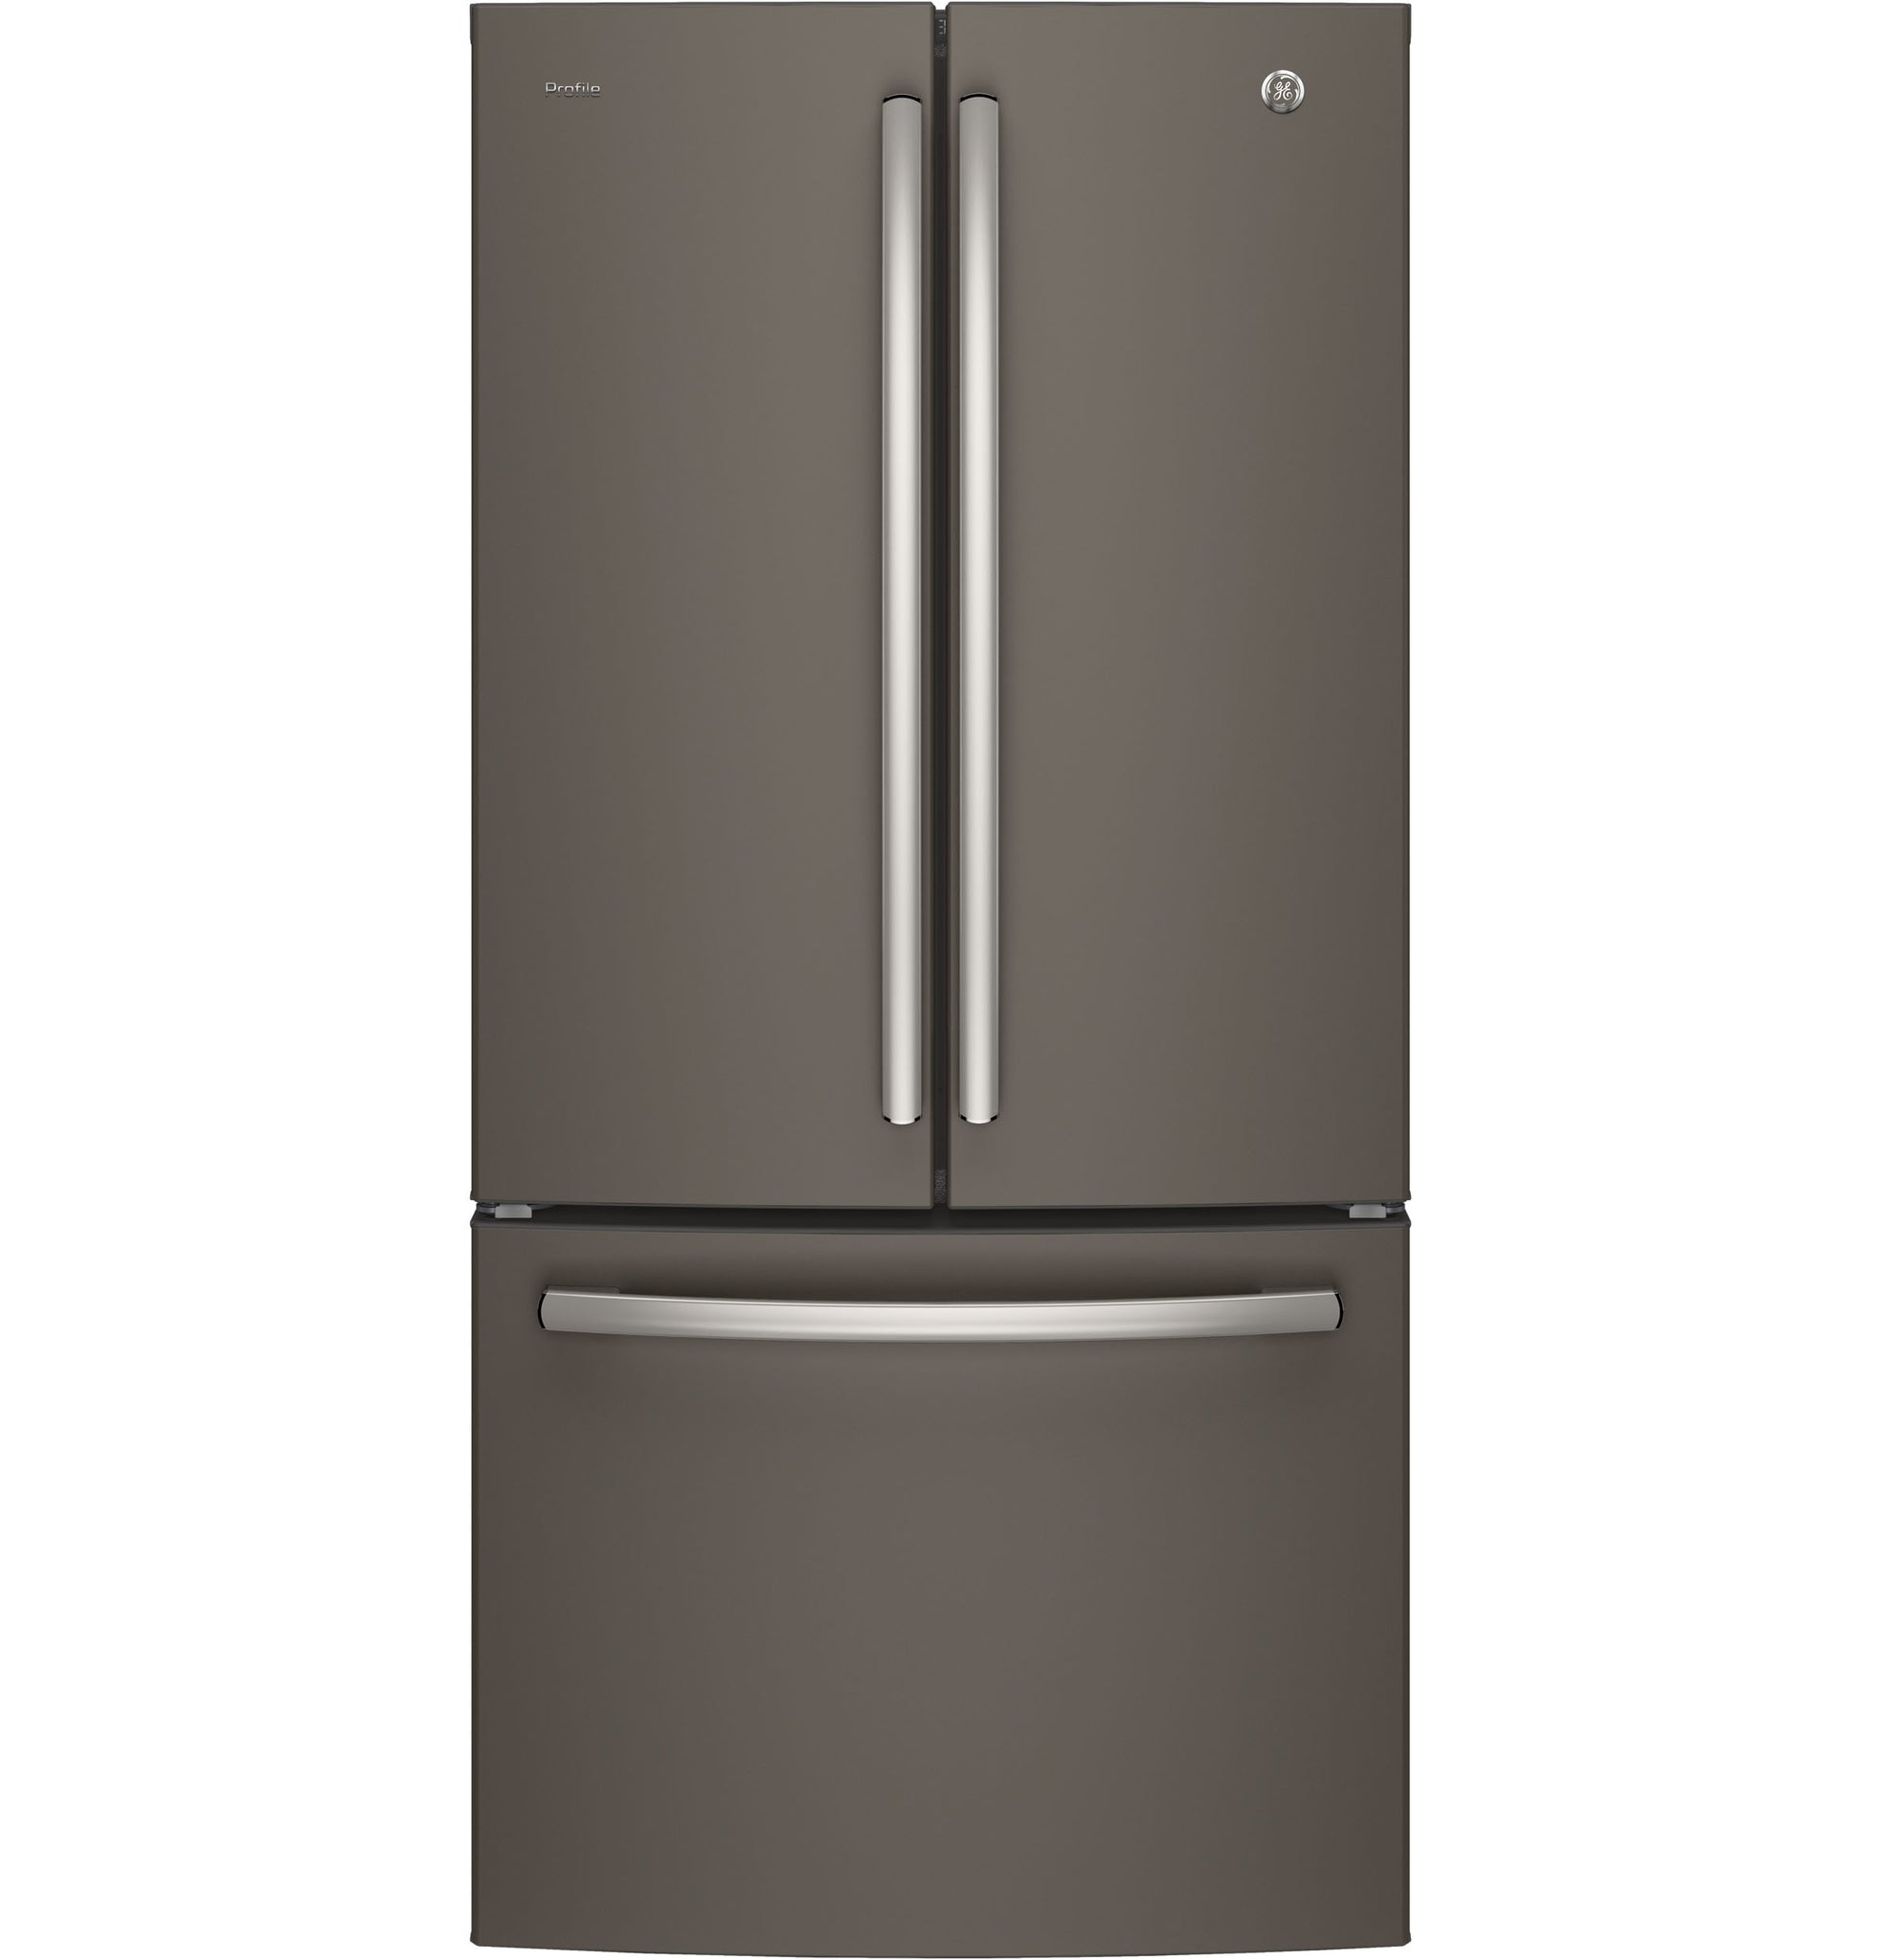 GE Profile Slate 25 CU.FT Fridge, With Internal Water/Ice